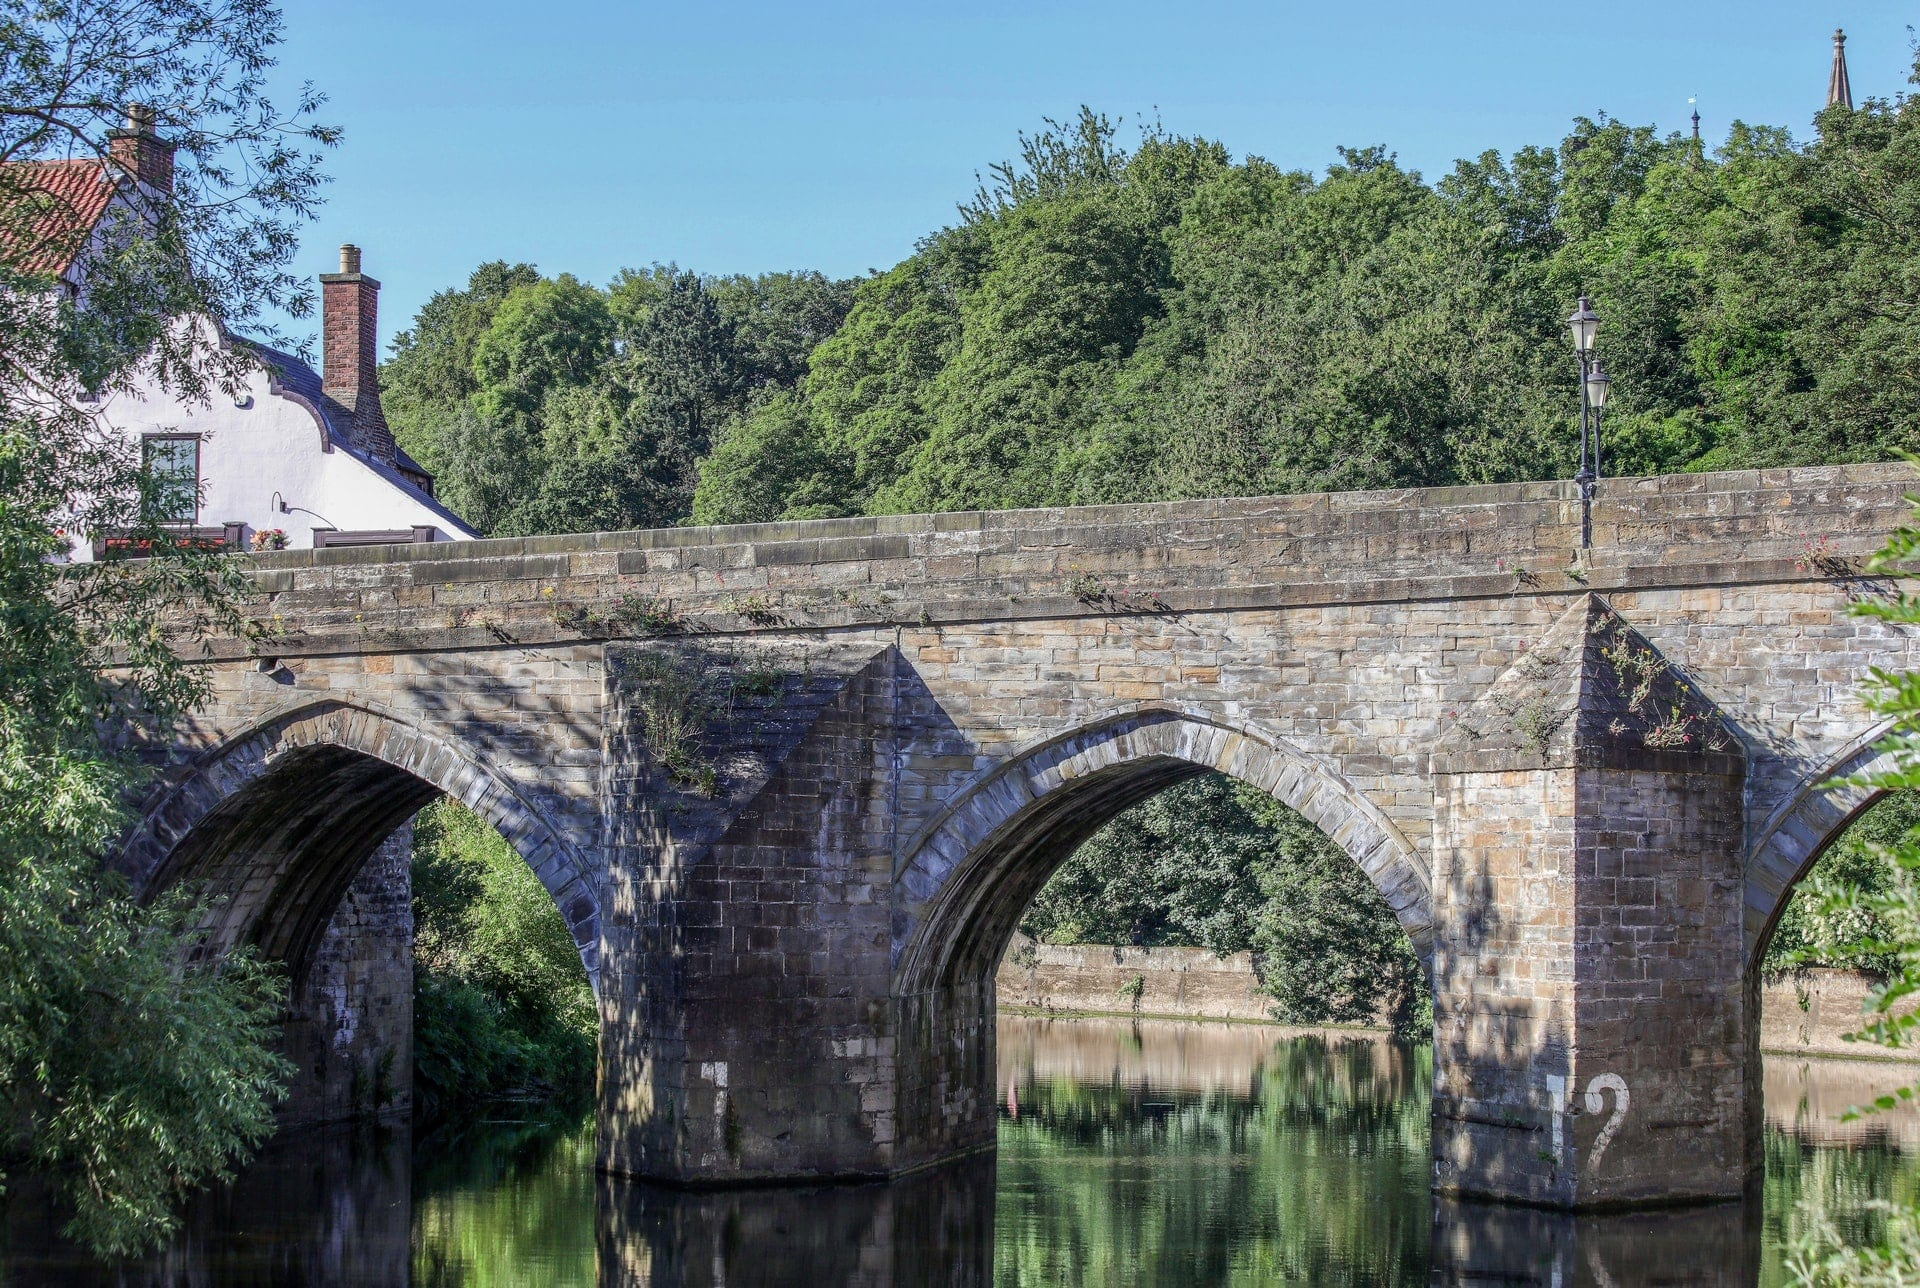 bridge-going-over-river-with-trees-in-background-in-durham